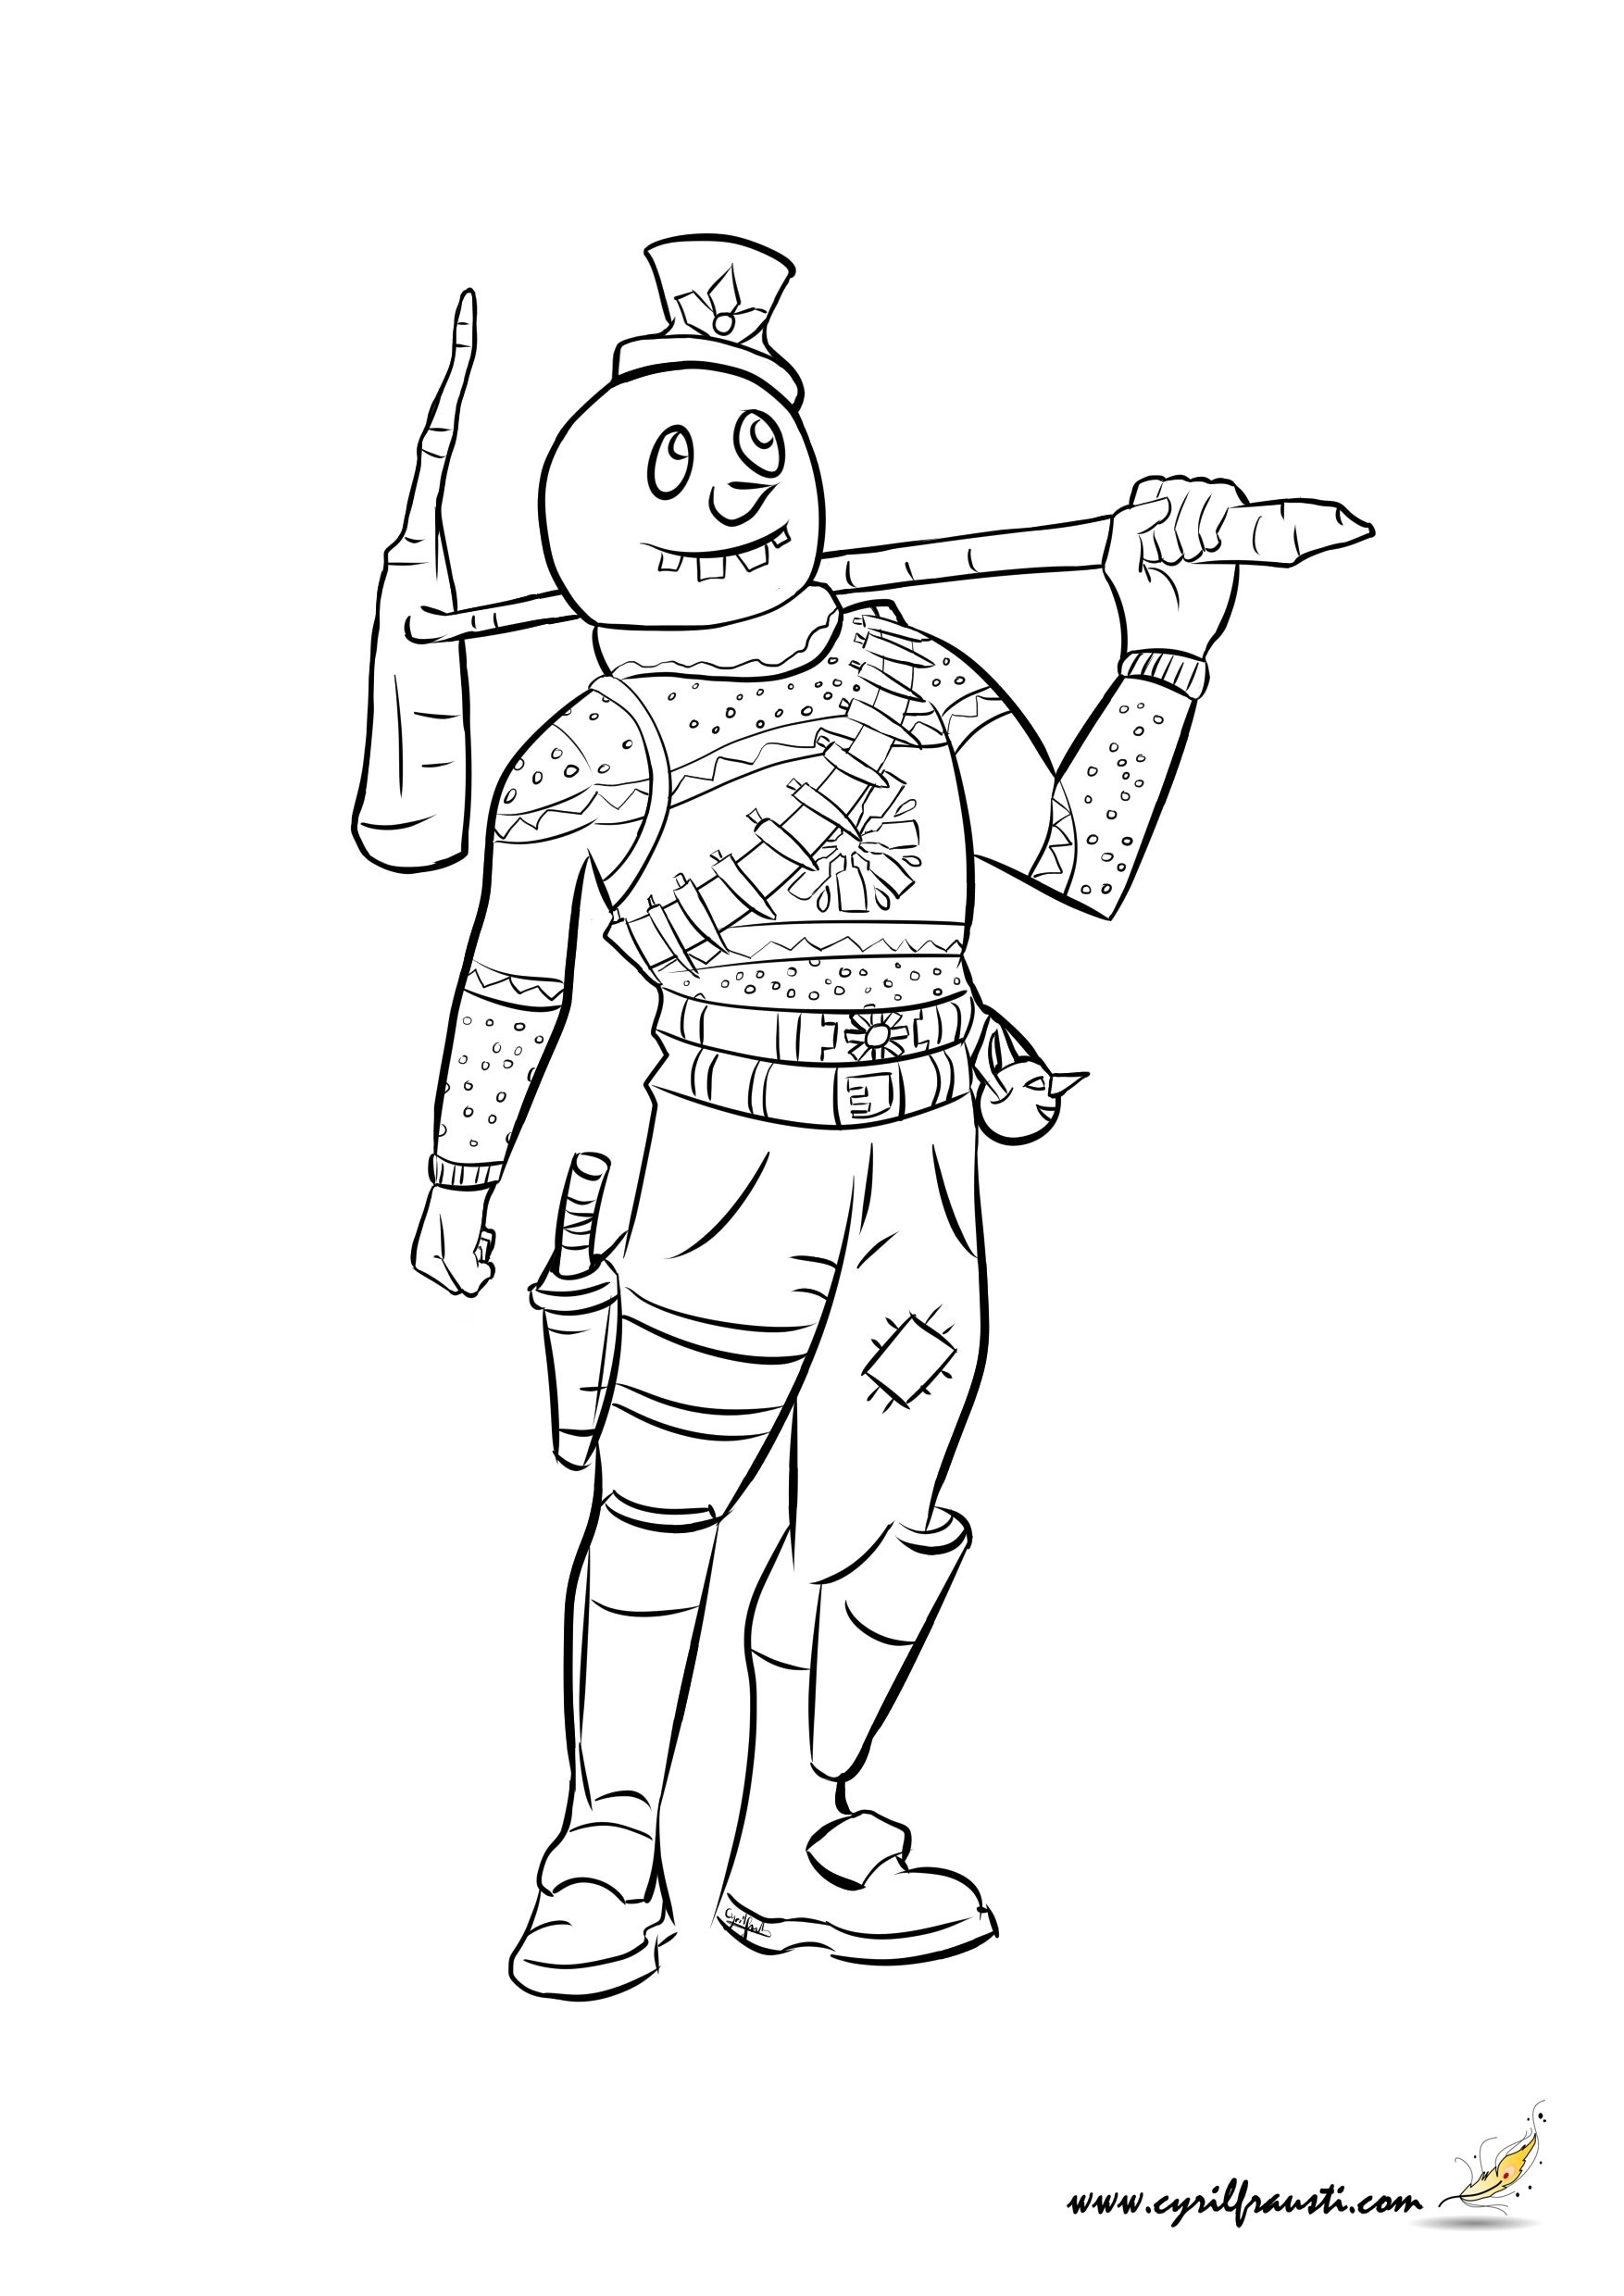 Coloriage De fortnite A Imprimer Gratuitement Elegant Coloriage fortnite Tenue Camouflage De No L – Cyril Frausti Of Coloriage De fortnite A Imprimer Gratuitement